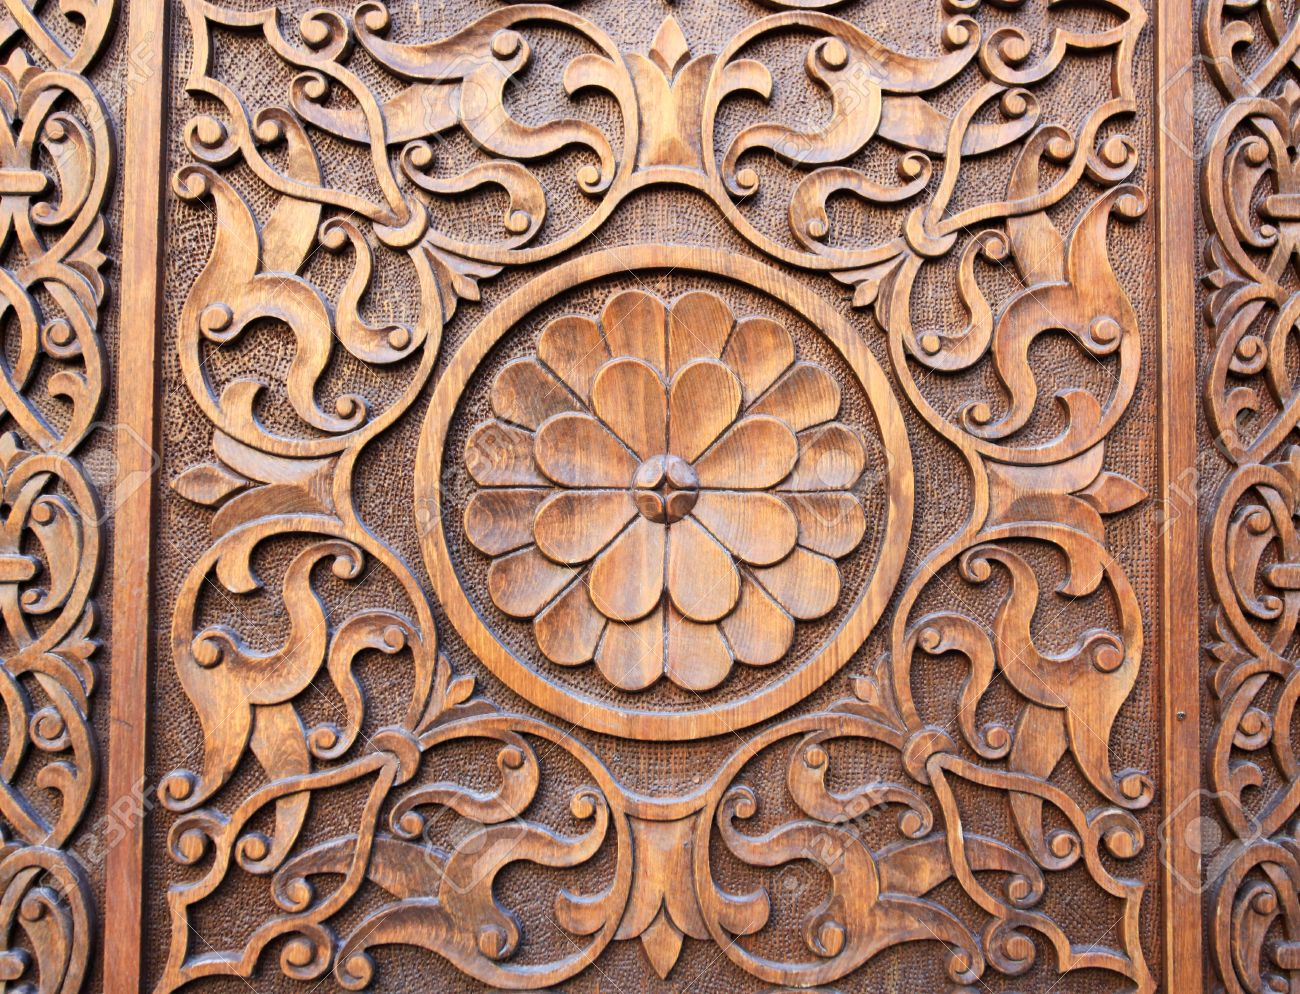 Islamic Persian design consisting stars and flowers carved on the surface of an old wooden & Islamic Persian Design Consisting Stars And Flowers Carved On ...